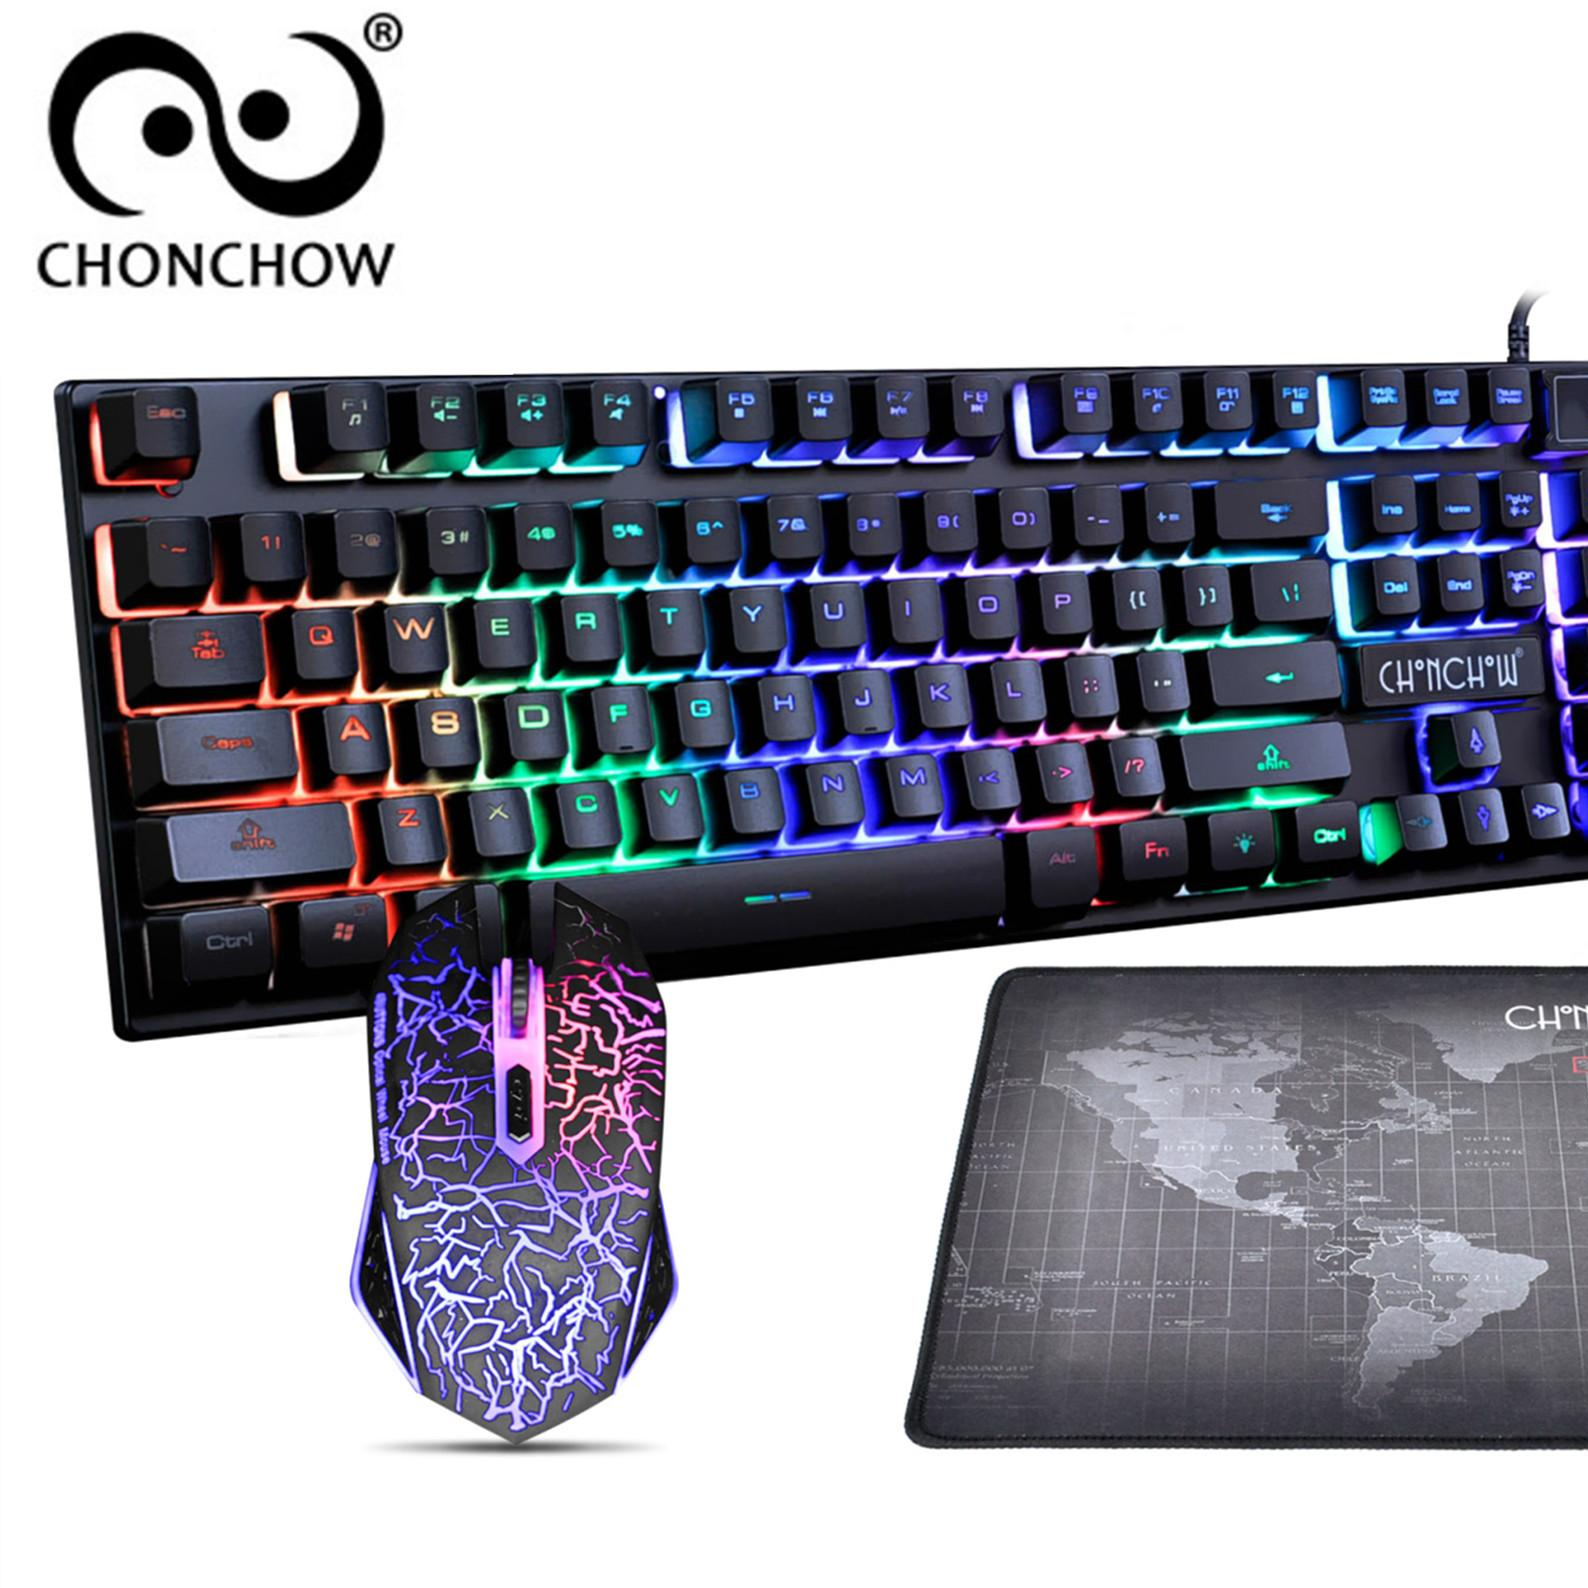 CHONCHOW LED Backlit Usb Wired Gaming Keyboard and Mouse combo 1911B(Black and 7color LED)【Free Shipping】